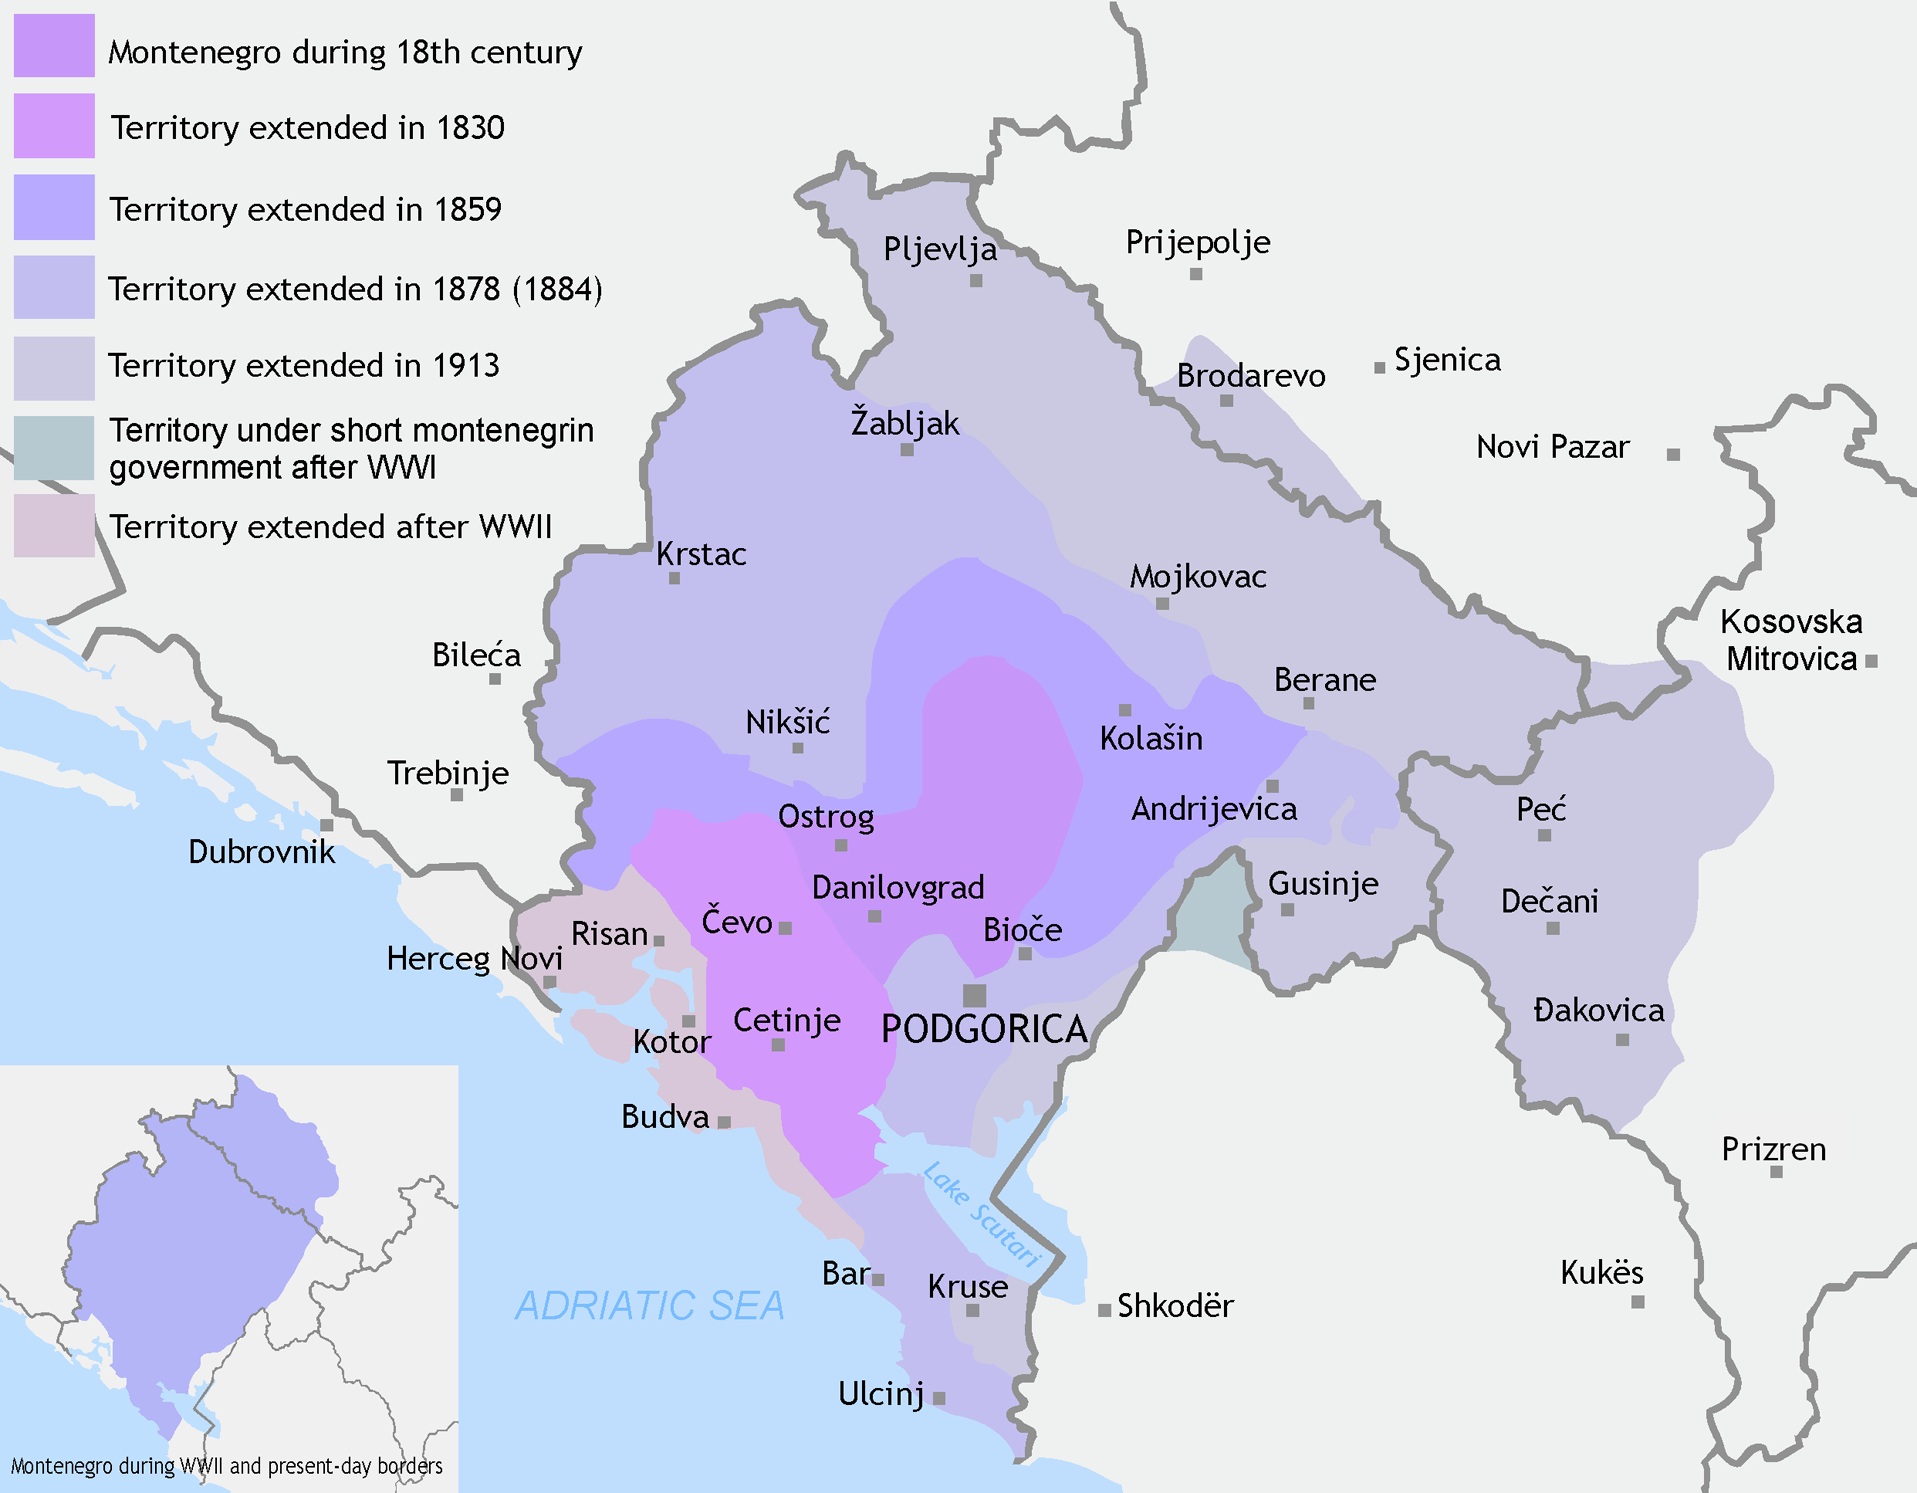 Territorial expansion of the Principality of Montenegro